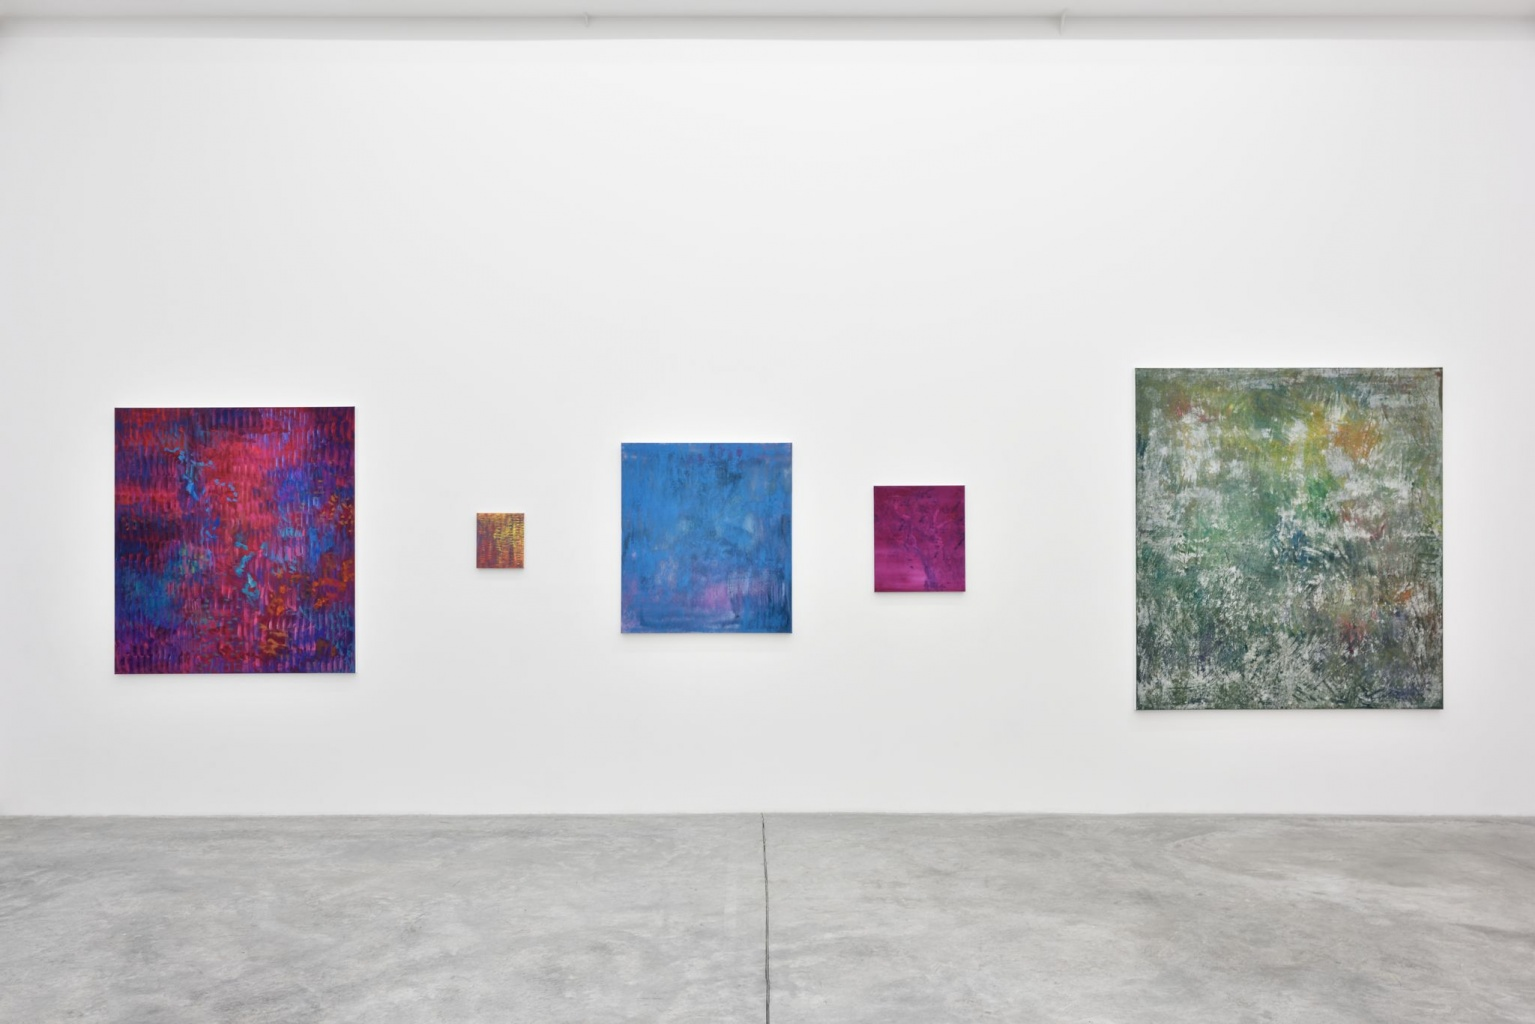 Almine Rech Gallery Almine rech gallery artists